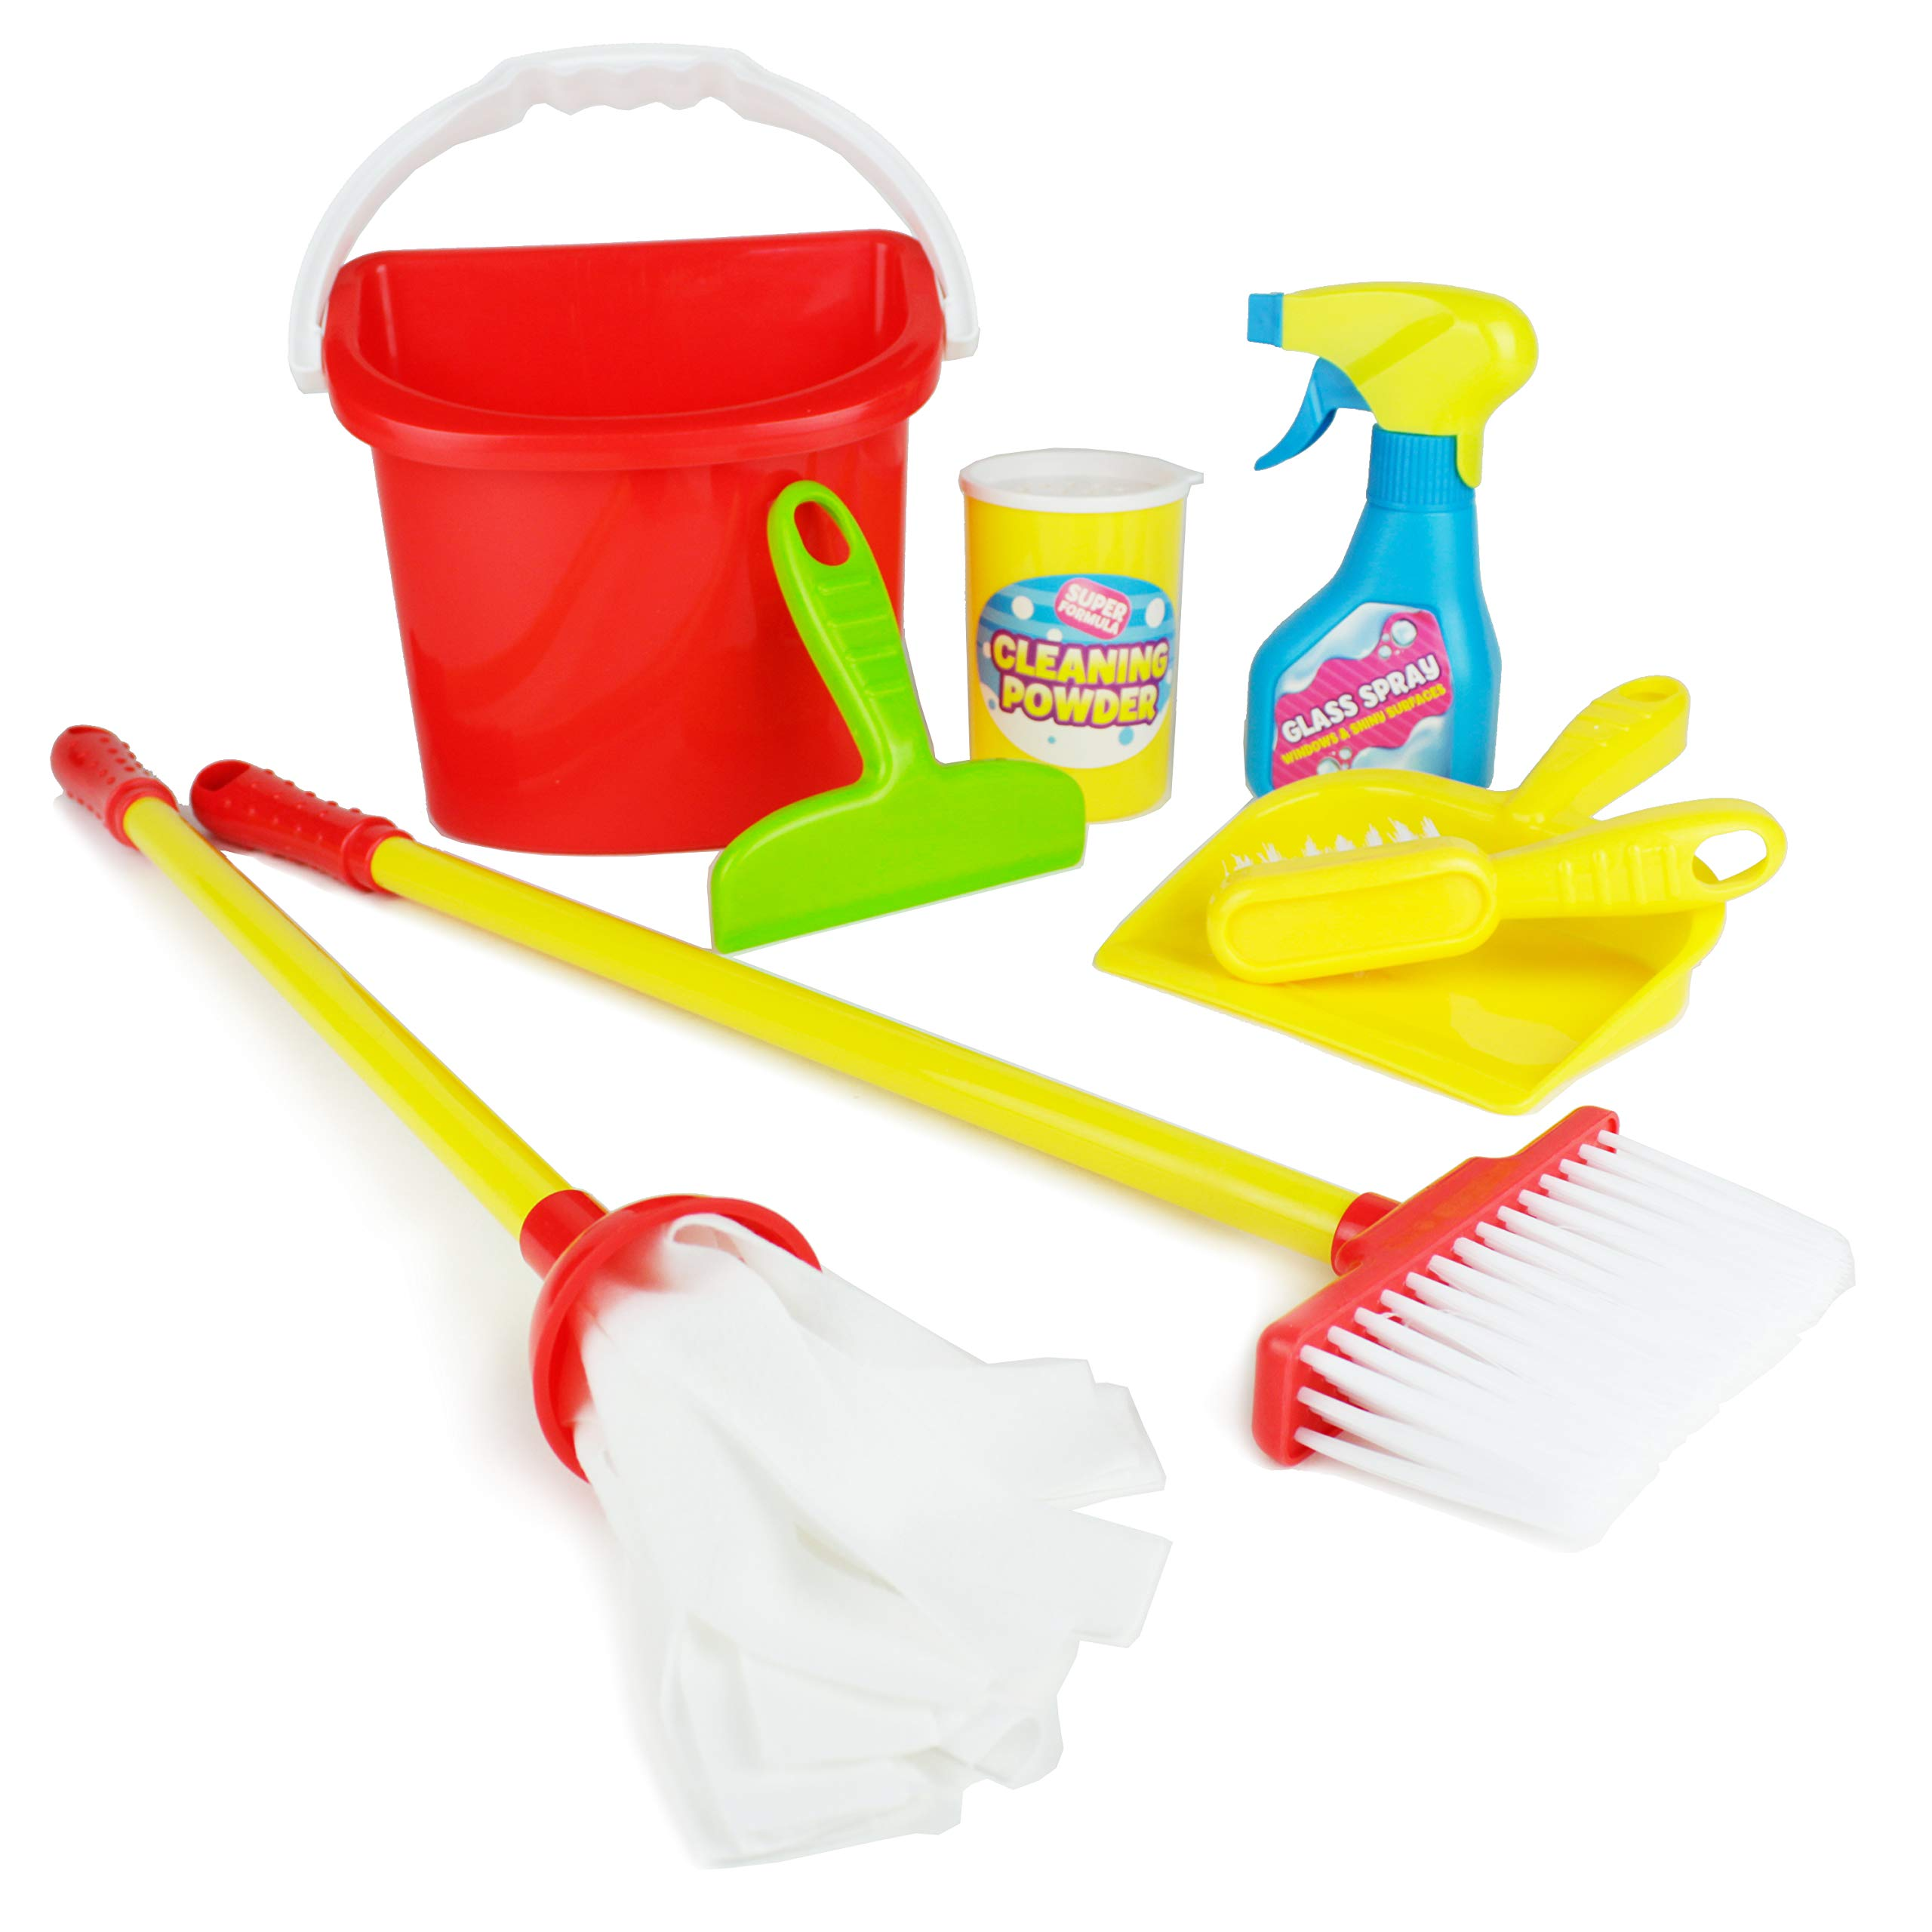 Boley Pretend Play Cleaner's Play Set and Cleaning Supplies - Perfect for Toddler Education and Kids Learning Development - Includes Mop, Broom, Spray Bottle, and More! by Boley